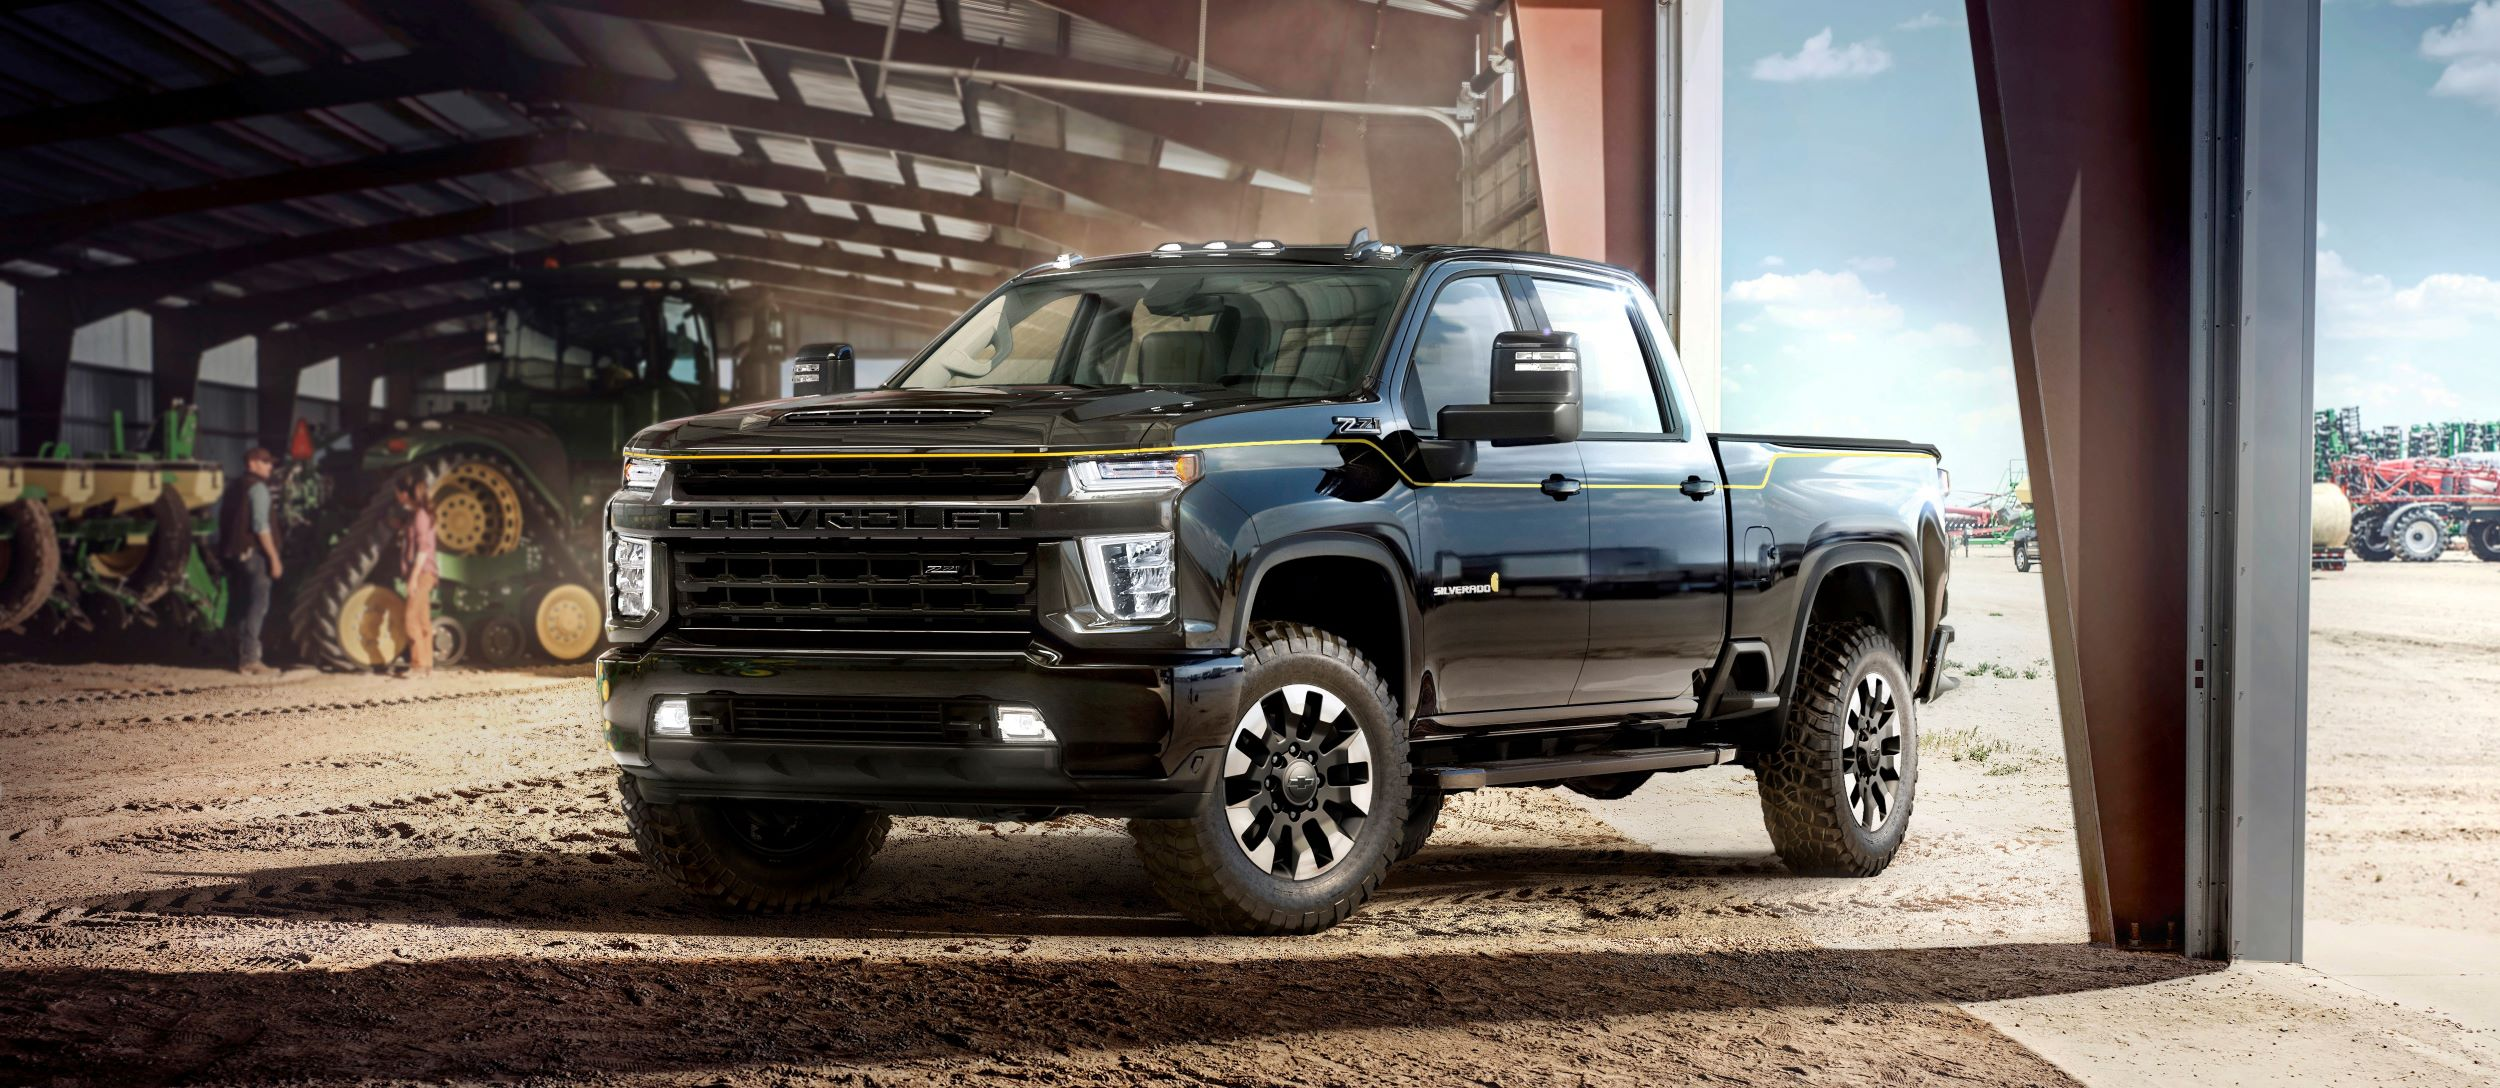 2021 Chevrolet Silverado 2500HD Greer SC